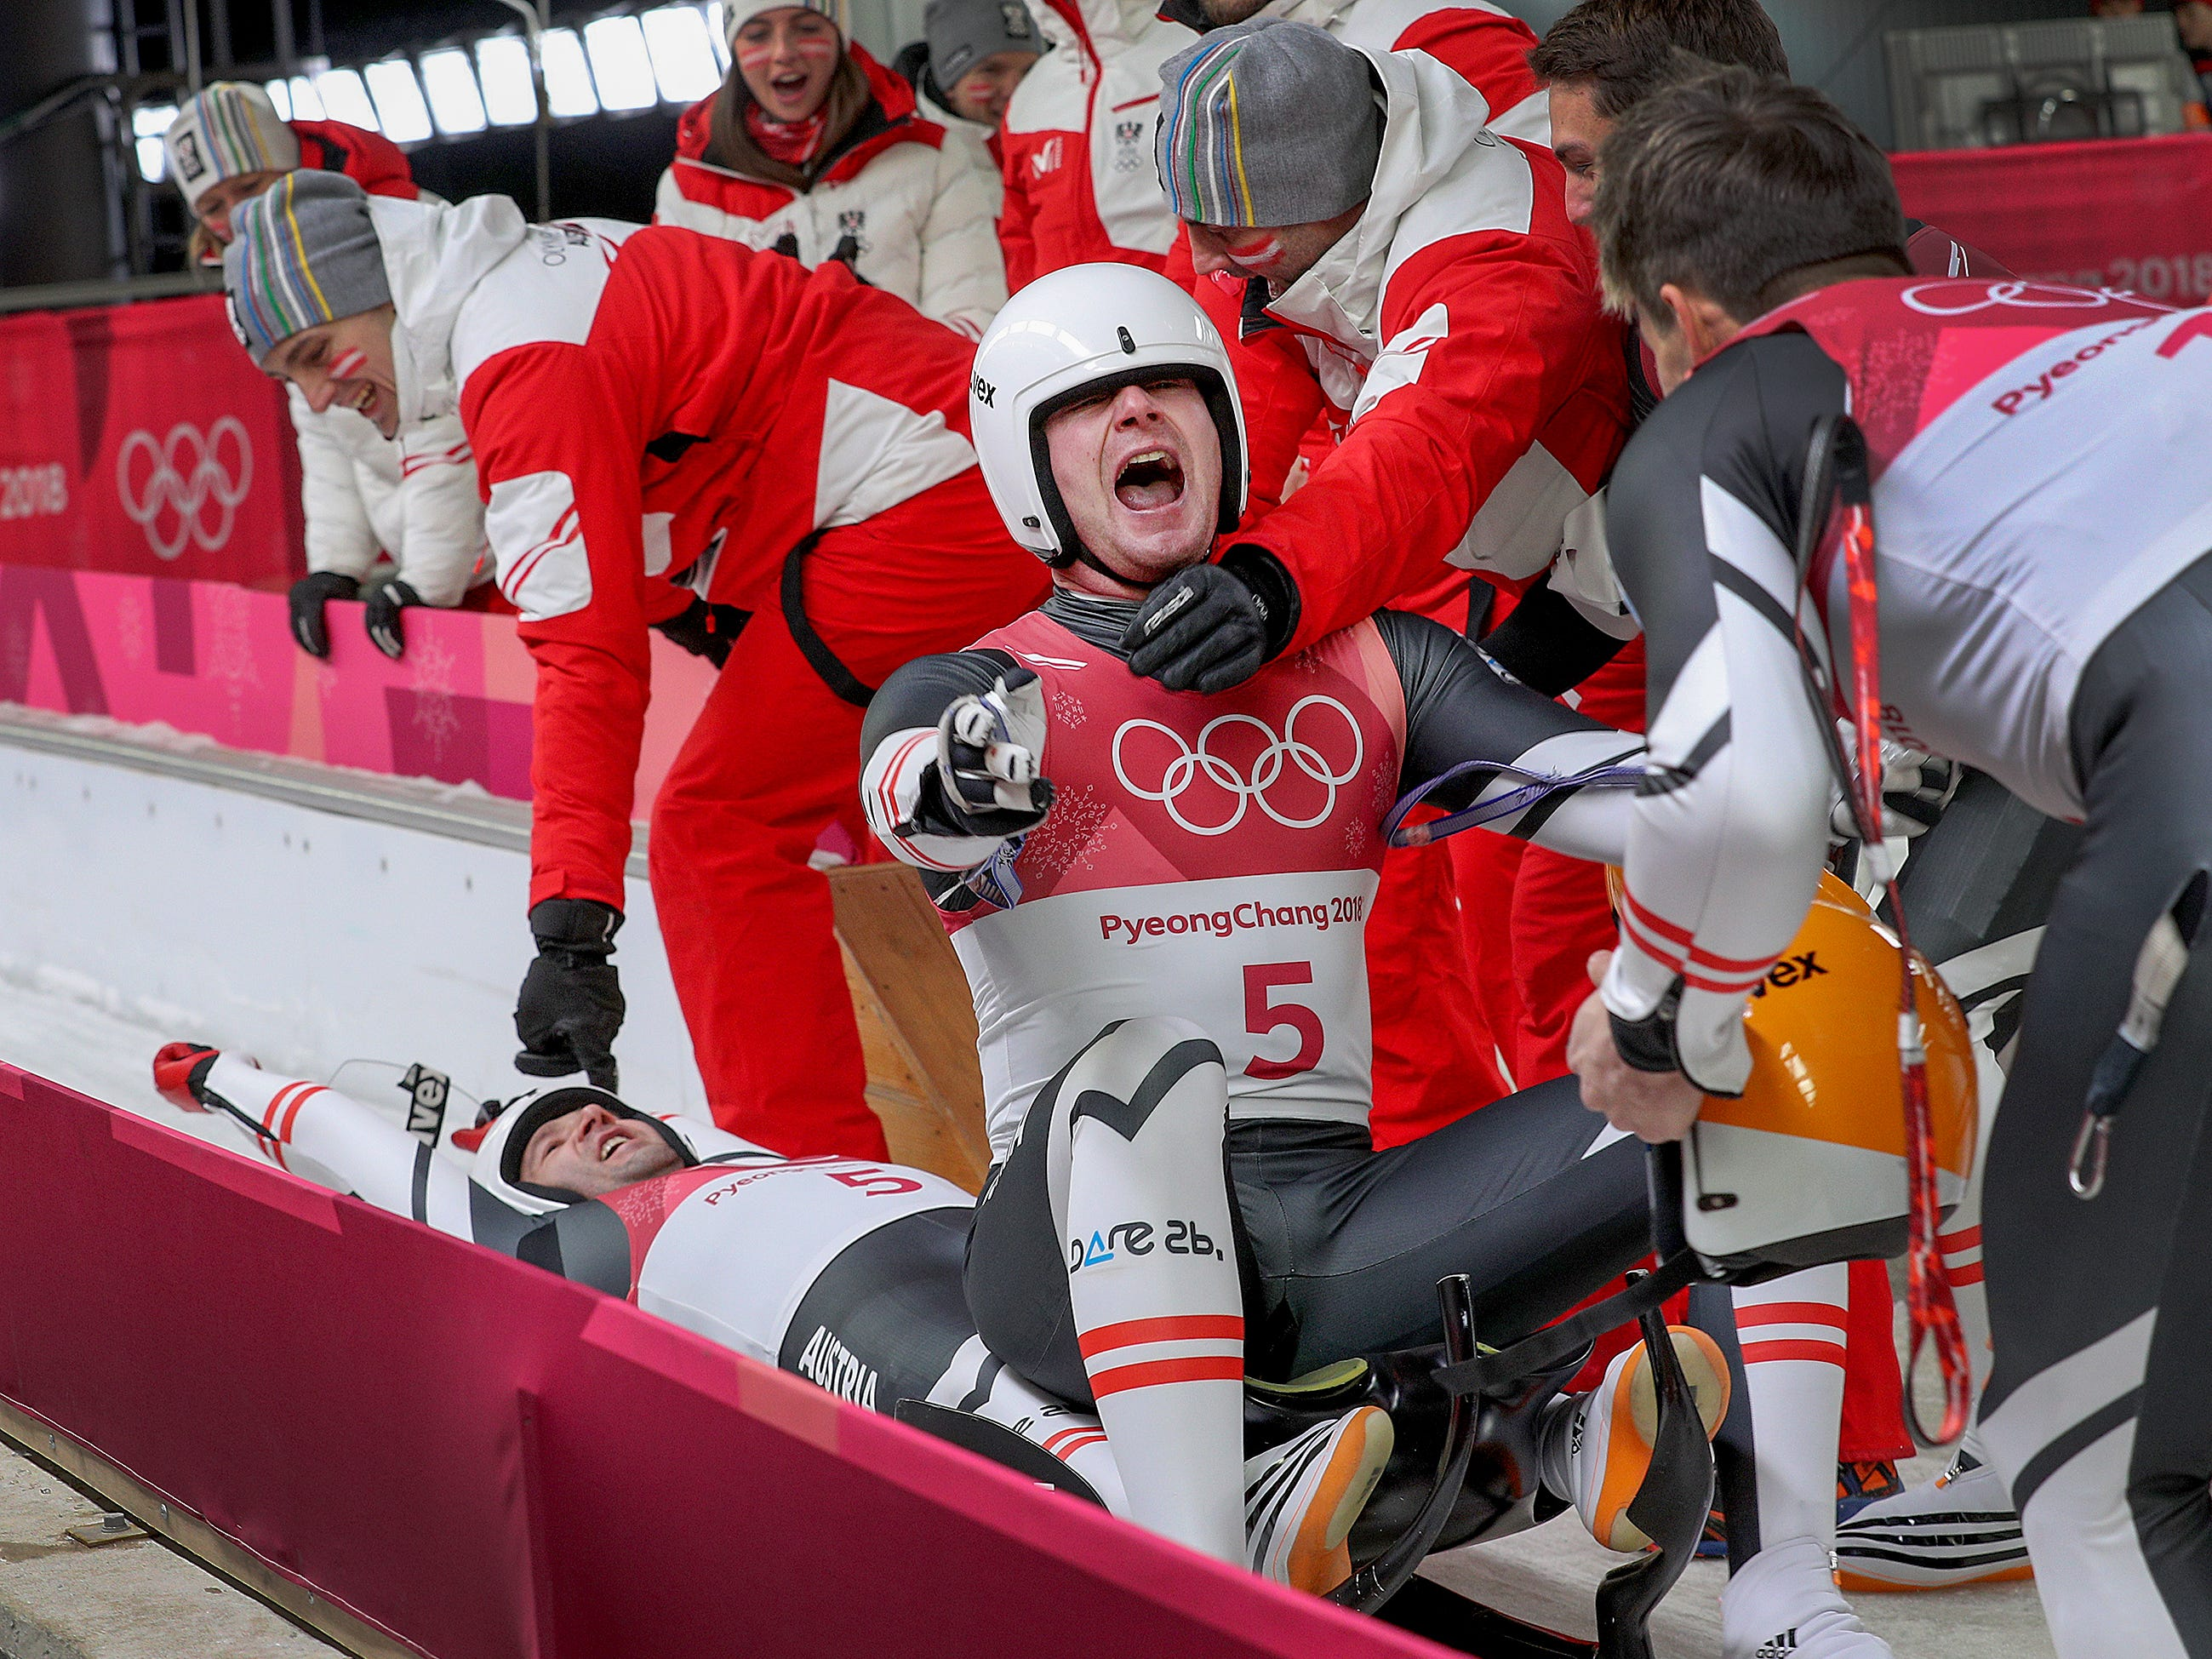 Feb 13, 2018; Gangneung, South Korea; Team Austria's Peter Penz and Georg Fischer celebrate their silver medal runs during Men's Double Luge finals at the Pyeongchang 2018 Olympic Winter Games at Olympic Sliding Centre. Mandatory Credit: Matt Kryger-USA TODAY Sports